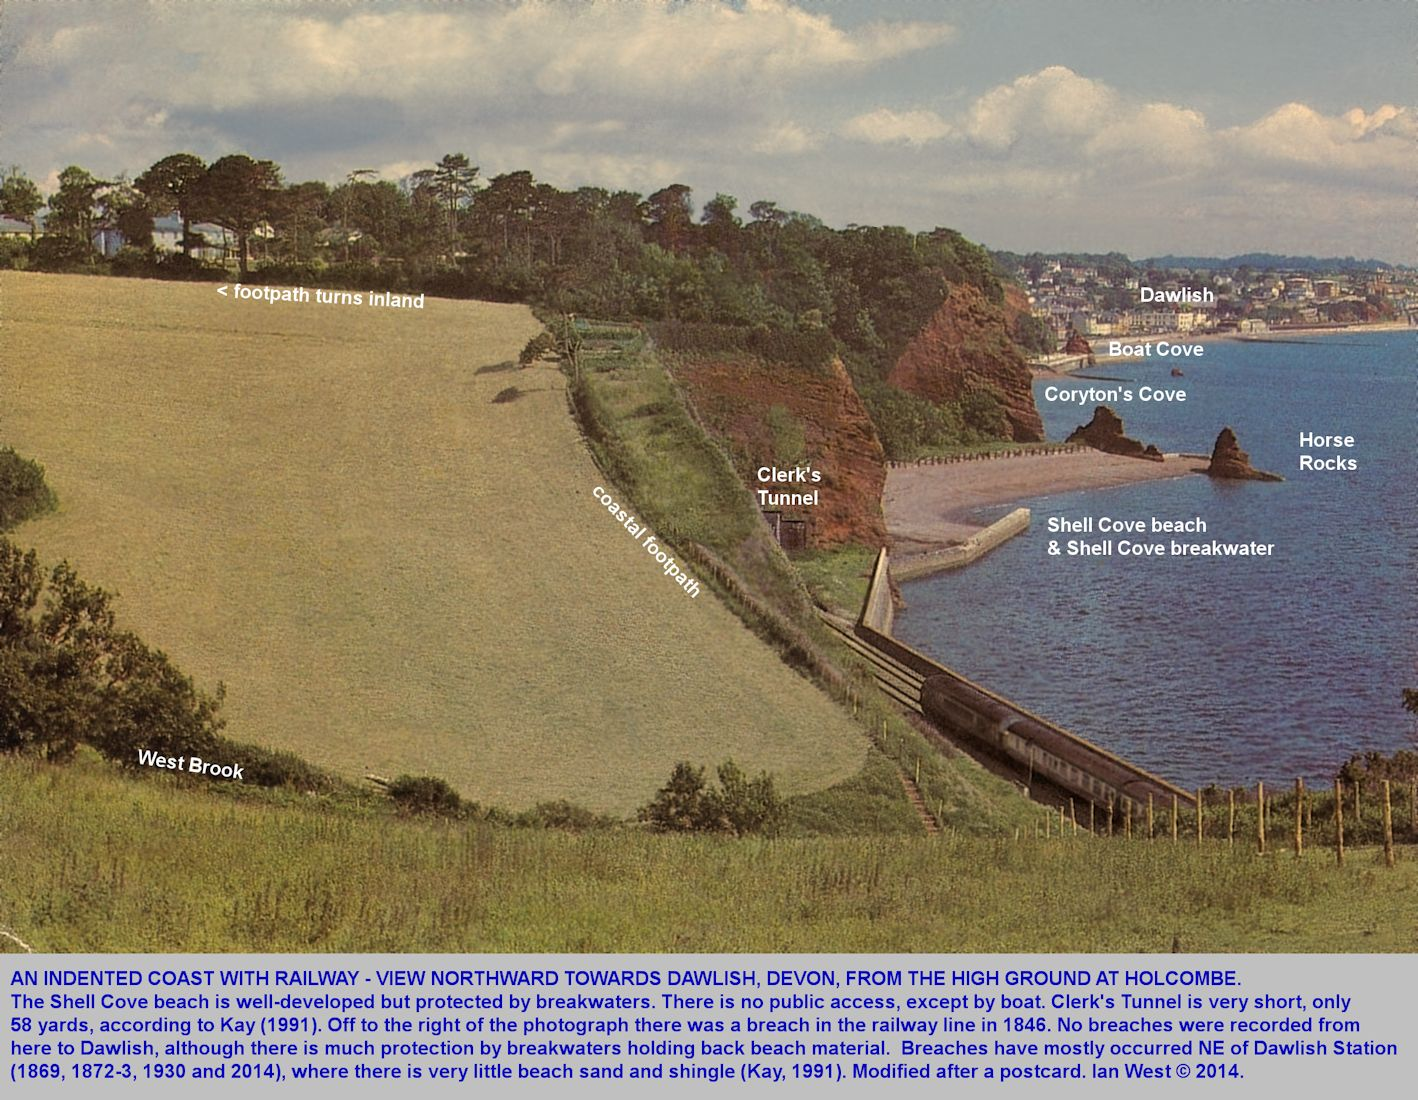 A view of Shell Cove and adjacent coast to the south of Dawlish, Dawlish, Devon